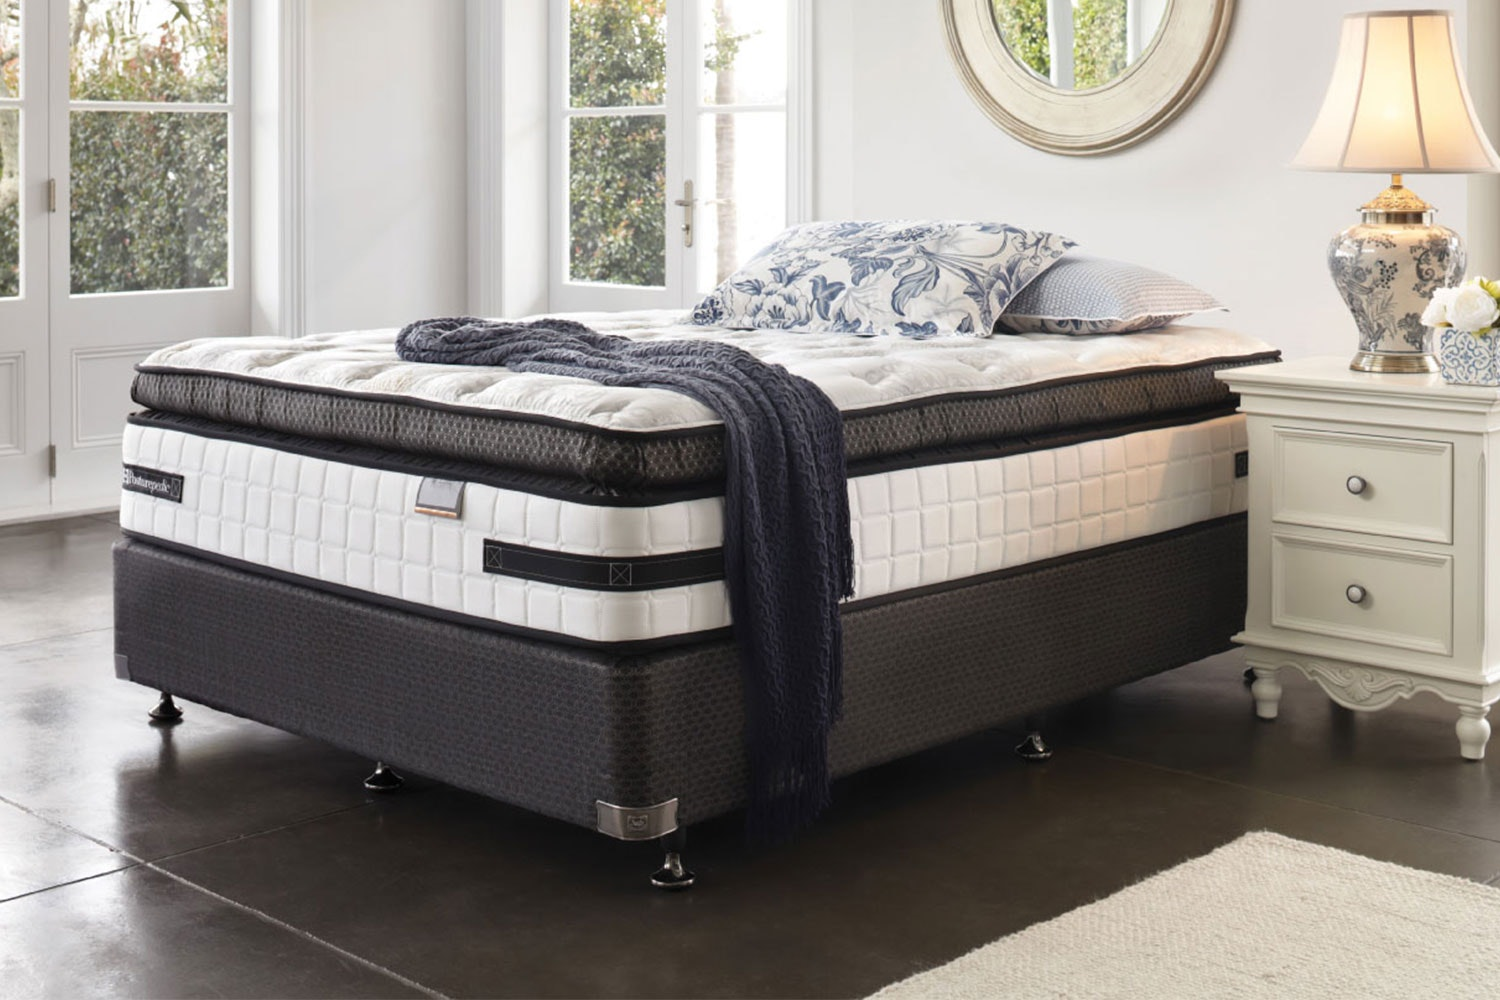 Kensington Ultra Plush Super King Bed by Sealy Posturepedic